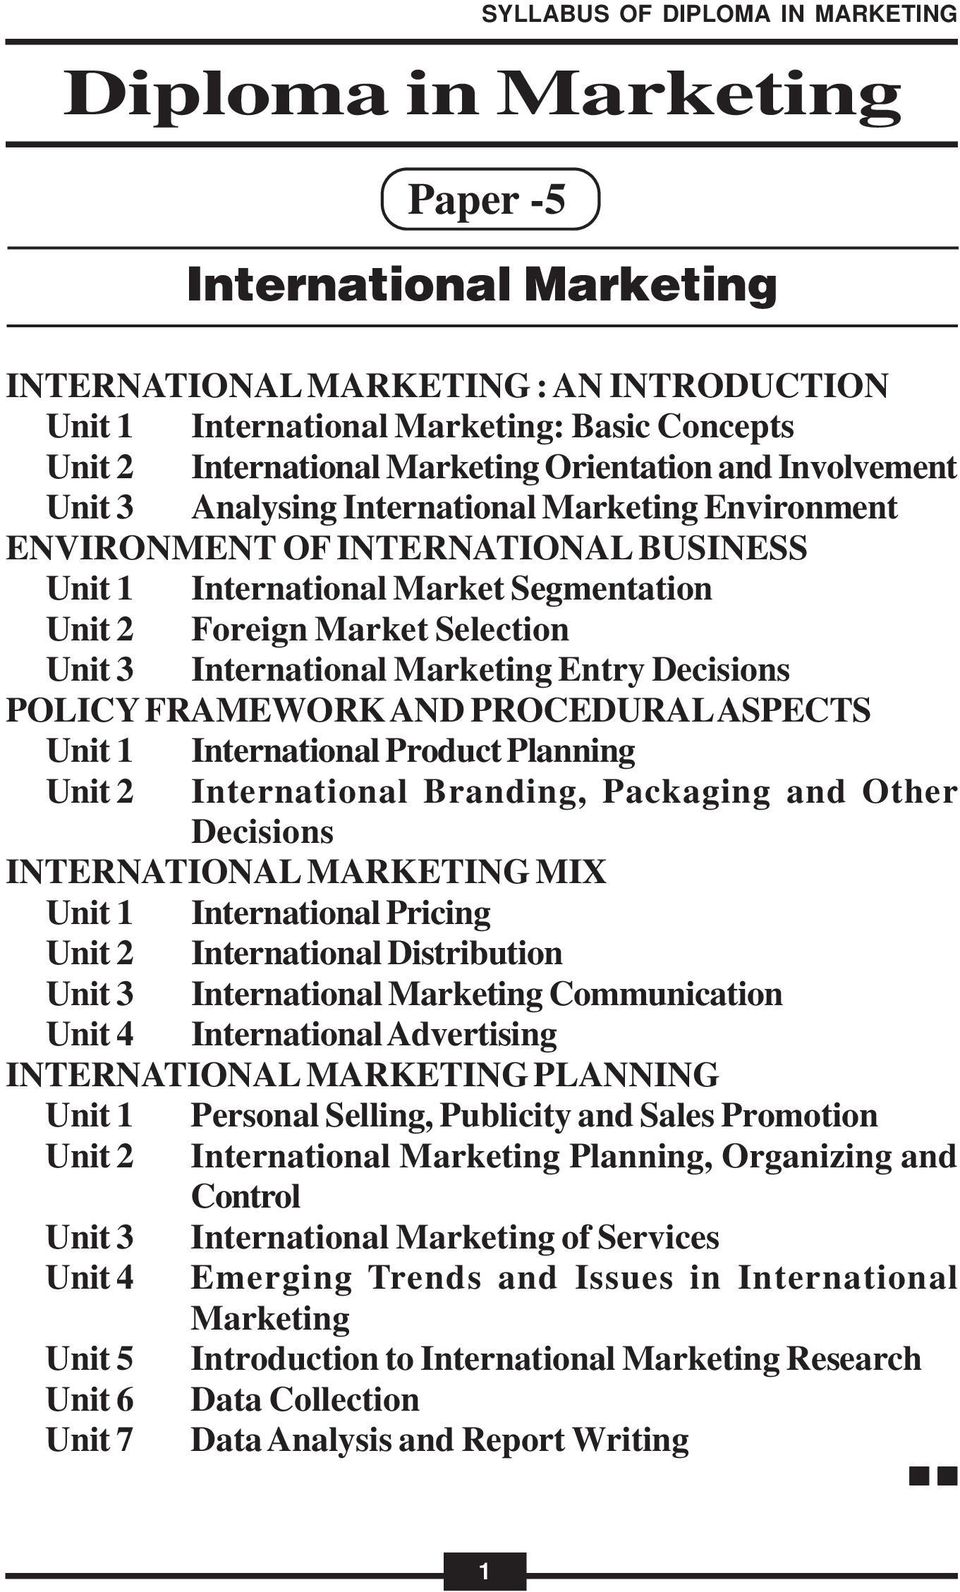 International Product Planning International Branding, Packaging and Other Decisions INTERNATIONAL MARKETING MIX International Pricing International Distribution International Marketing Communication